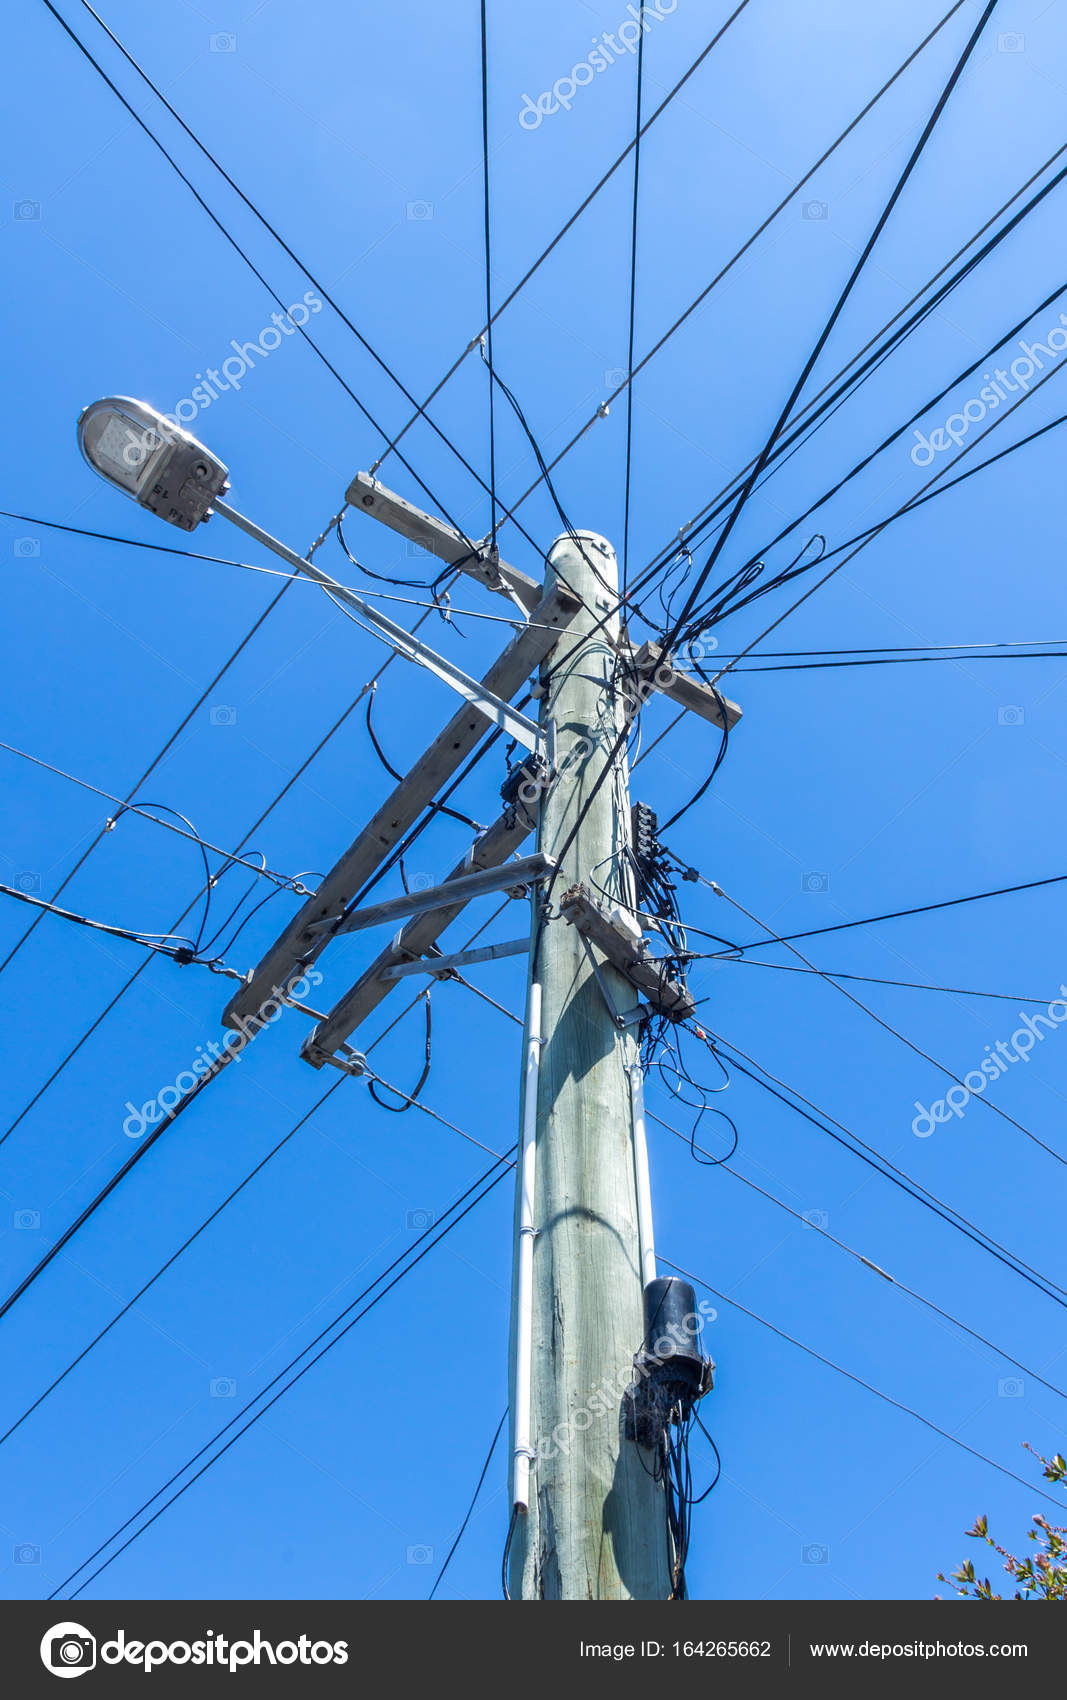 lamp post with telephone wires attached – Stock Editorial Photo ...